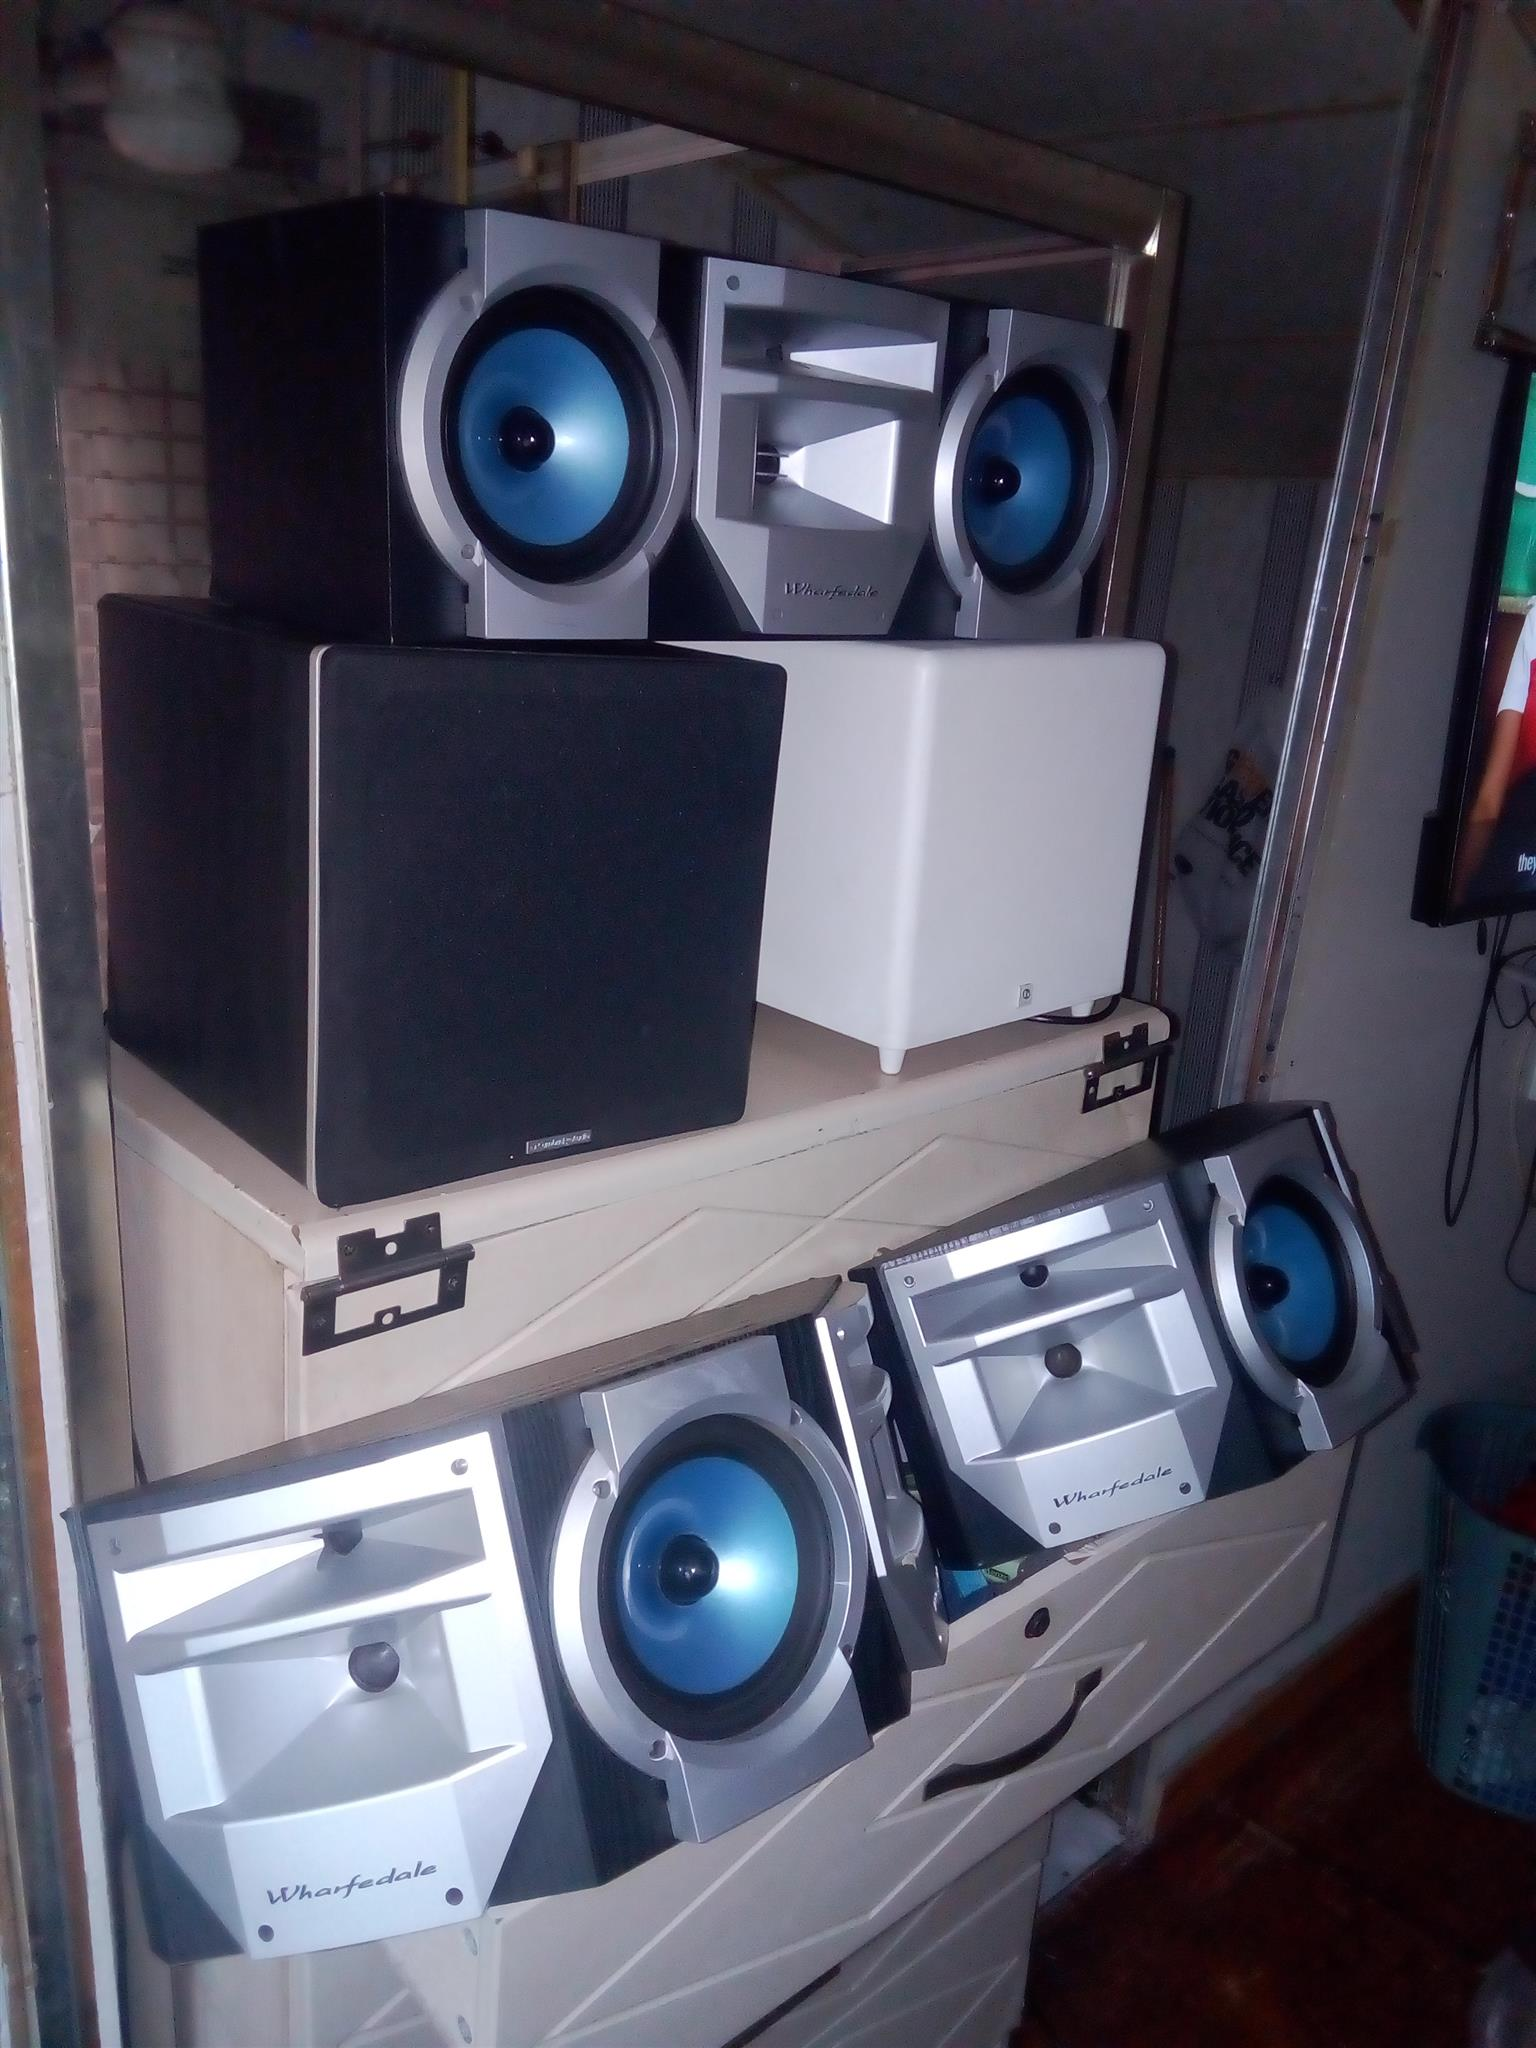 Boston subwoofer and Cambridge subwoofer with 3 whardale huge centre and surround speakers.